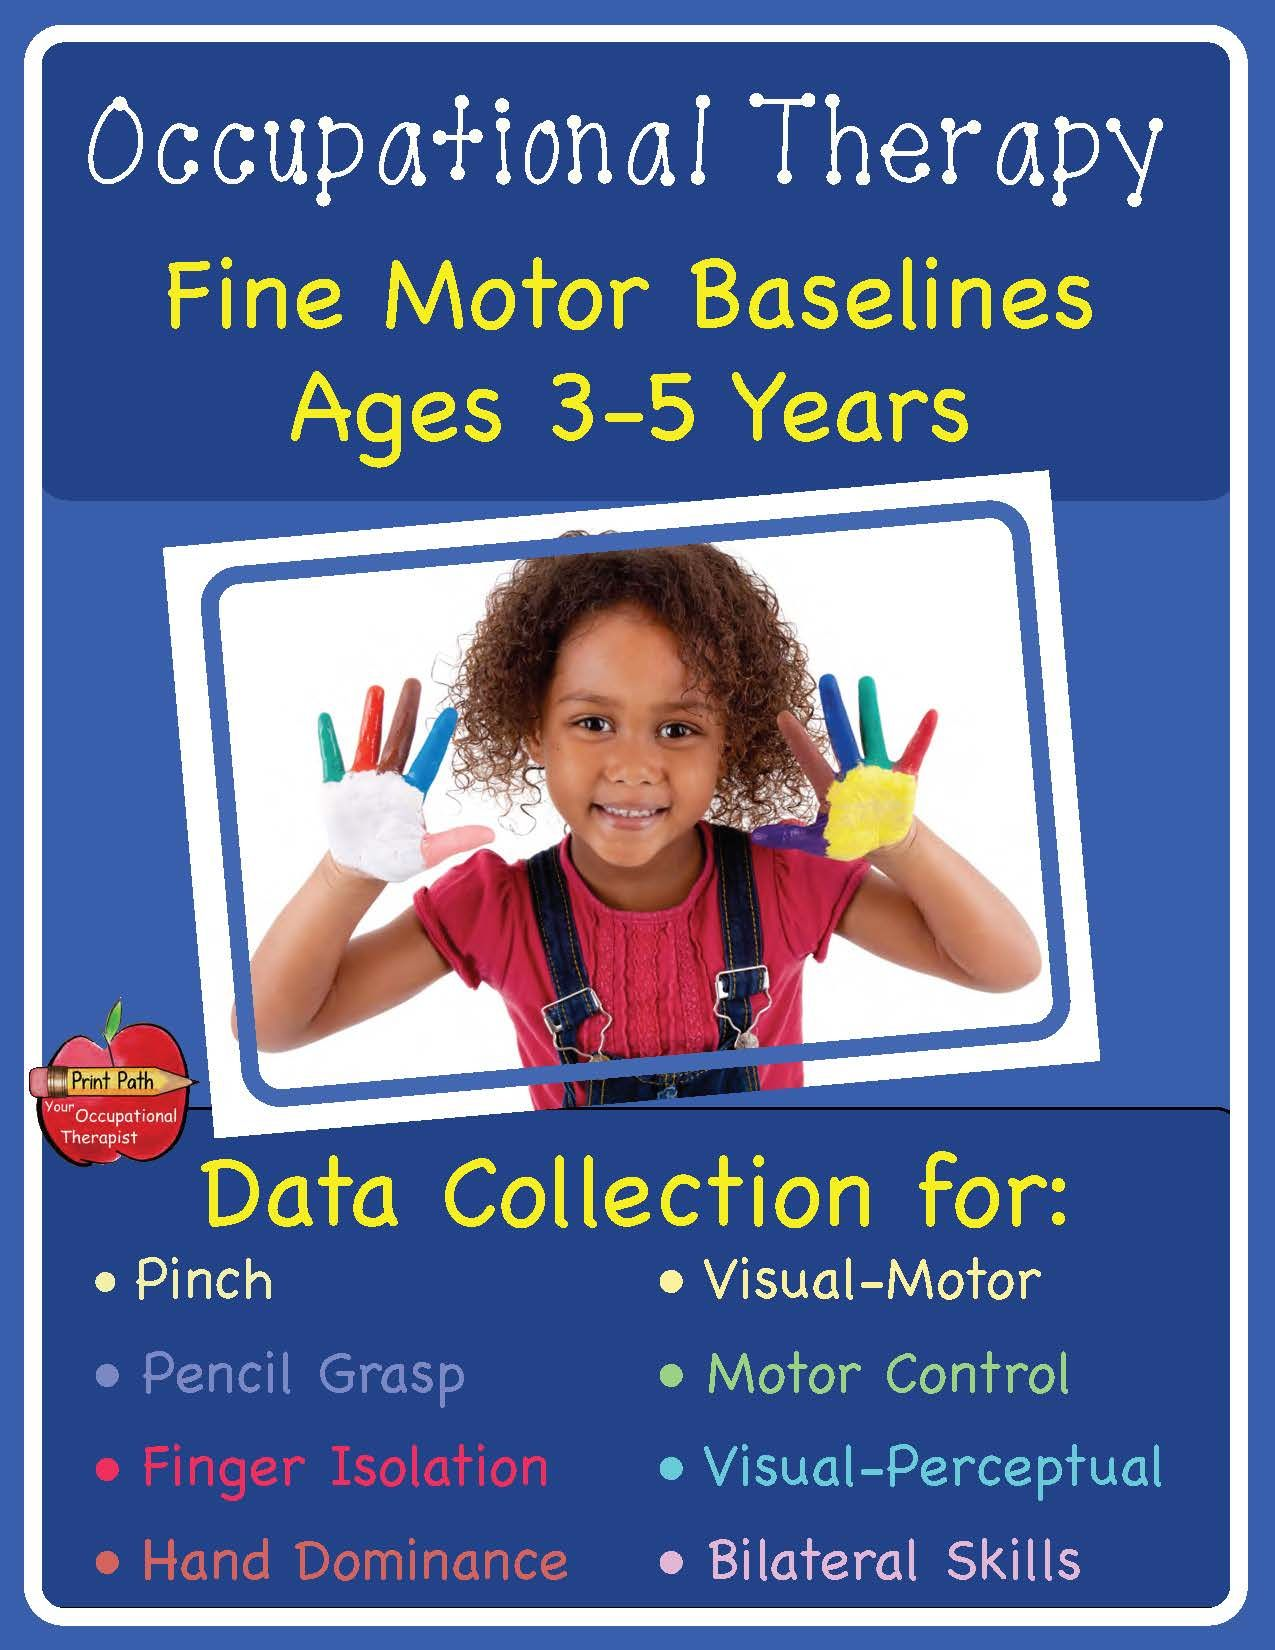 Occupational Therapy Fine Motor Baselines